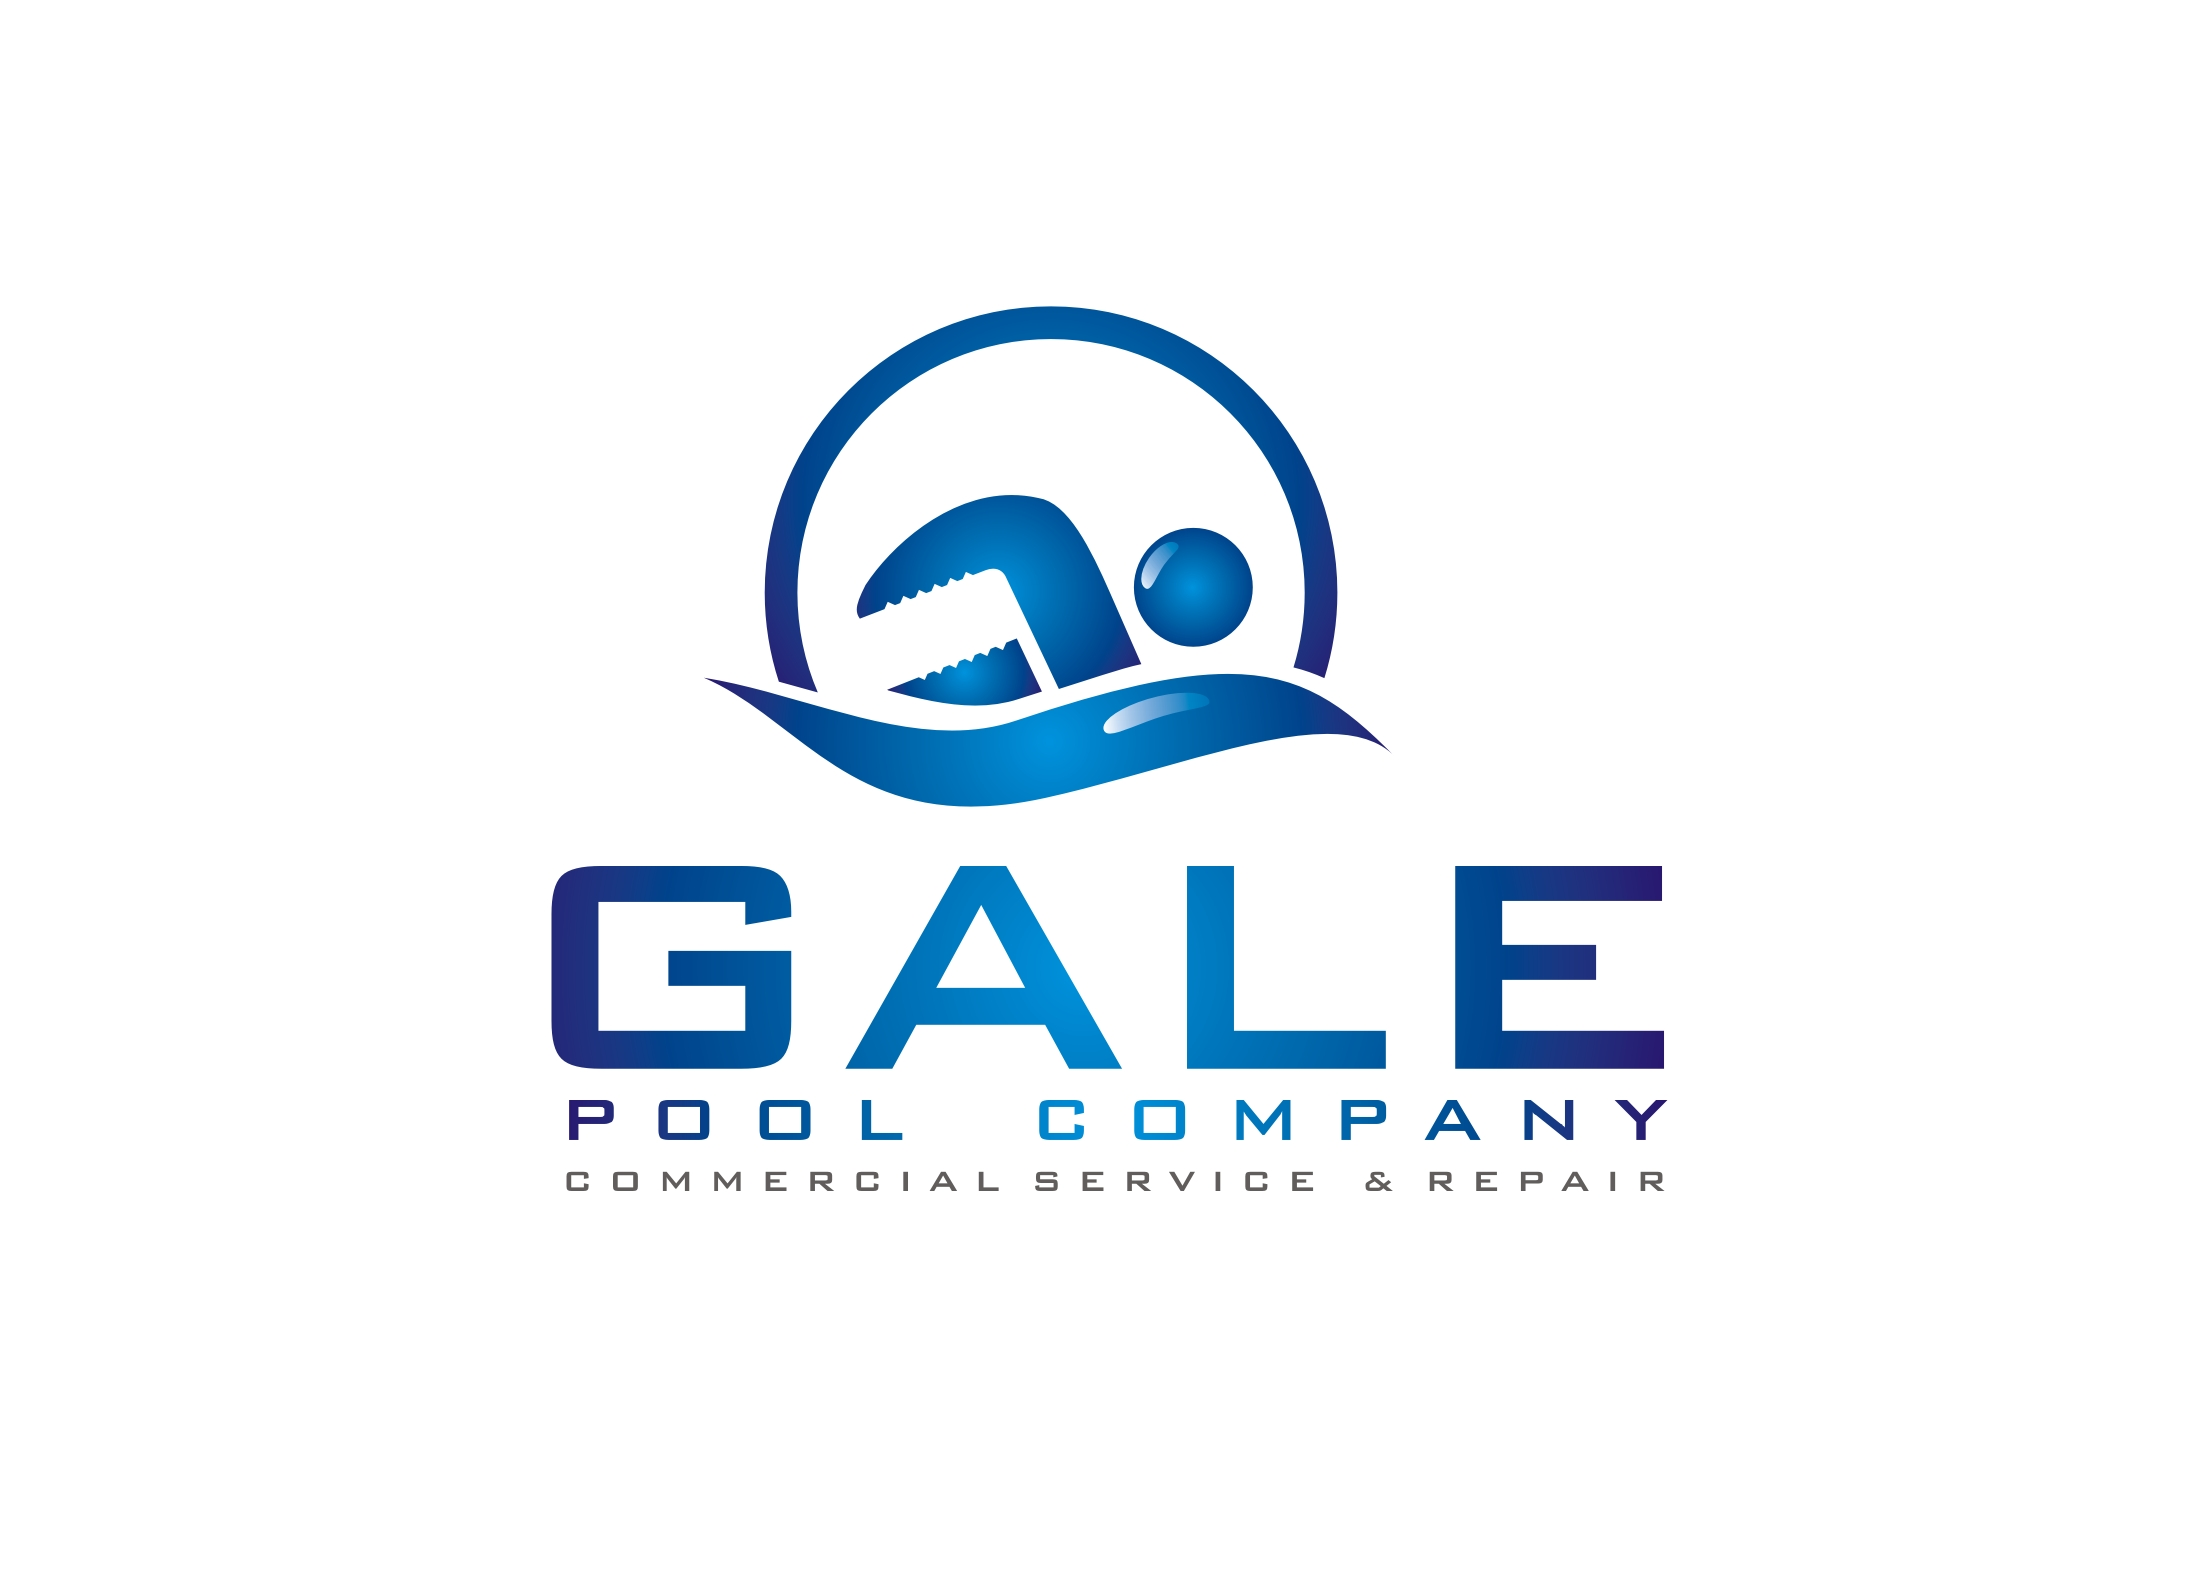 Logo Design by Zdravko Krulj - Entry No. 91 in the Logo Design Contest Imaginative Logo Design for Gale Pool Company.